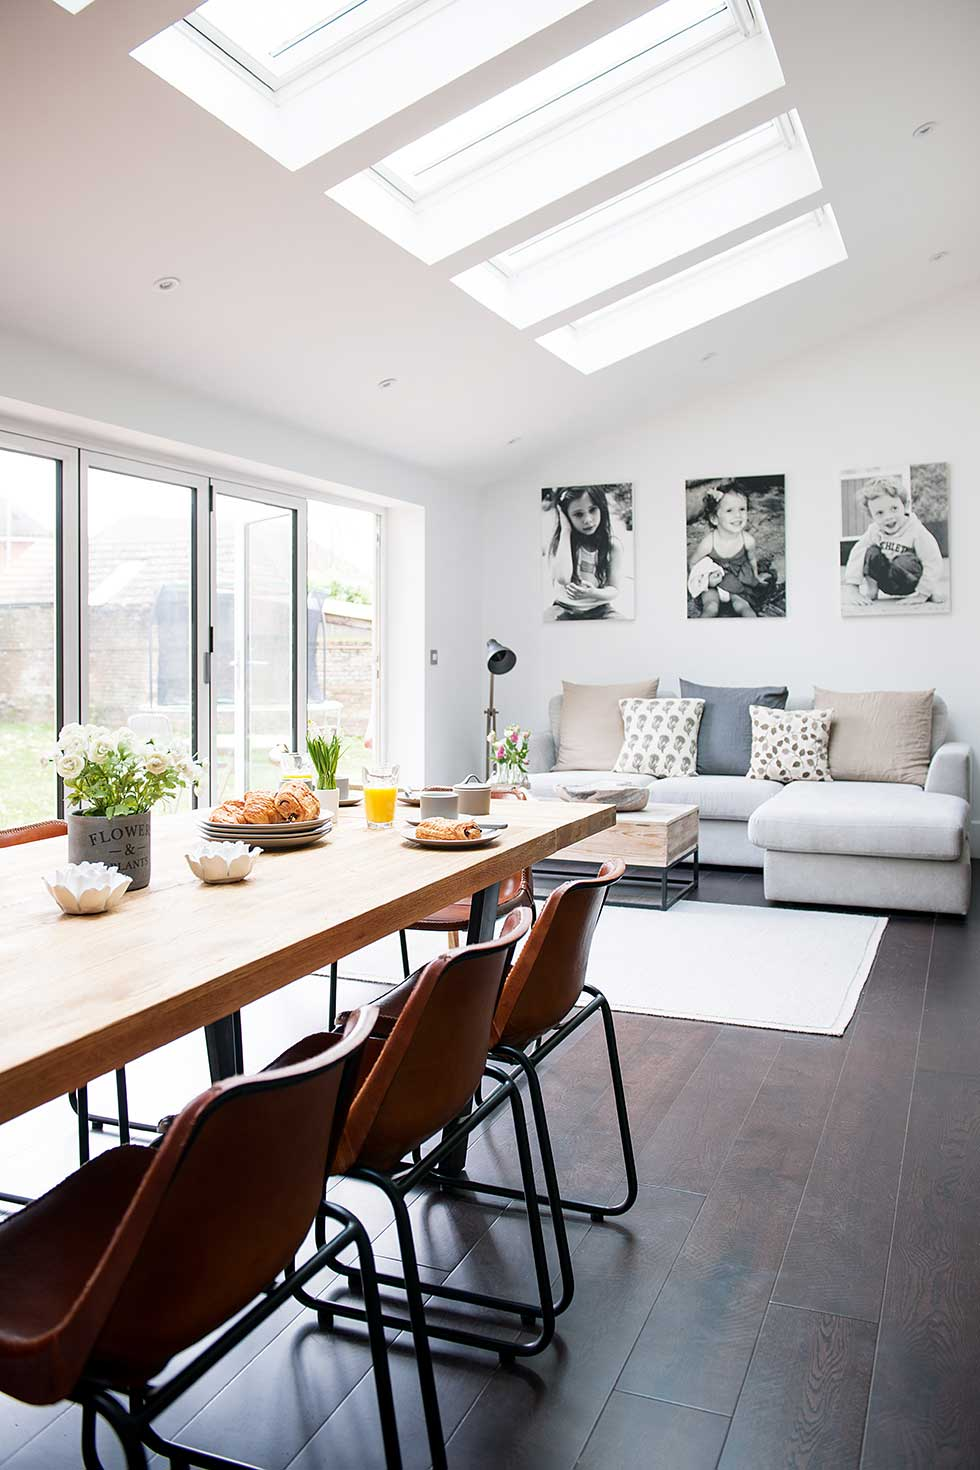 Industrial kitchen extension dining living rooflights with sofa and table